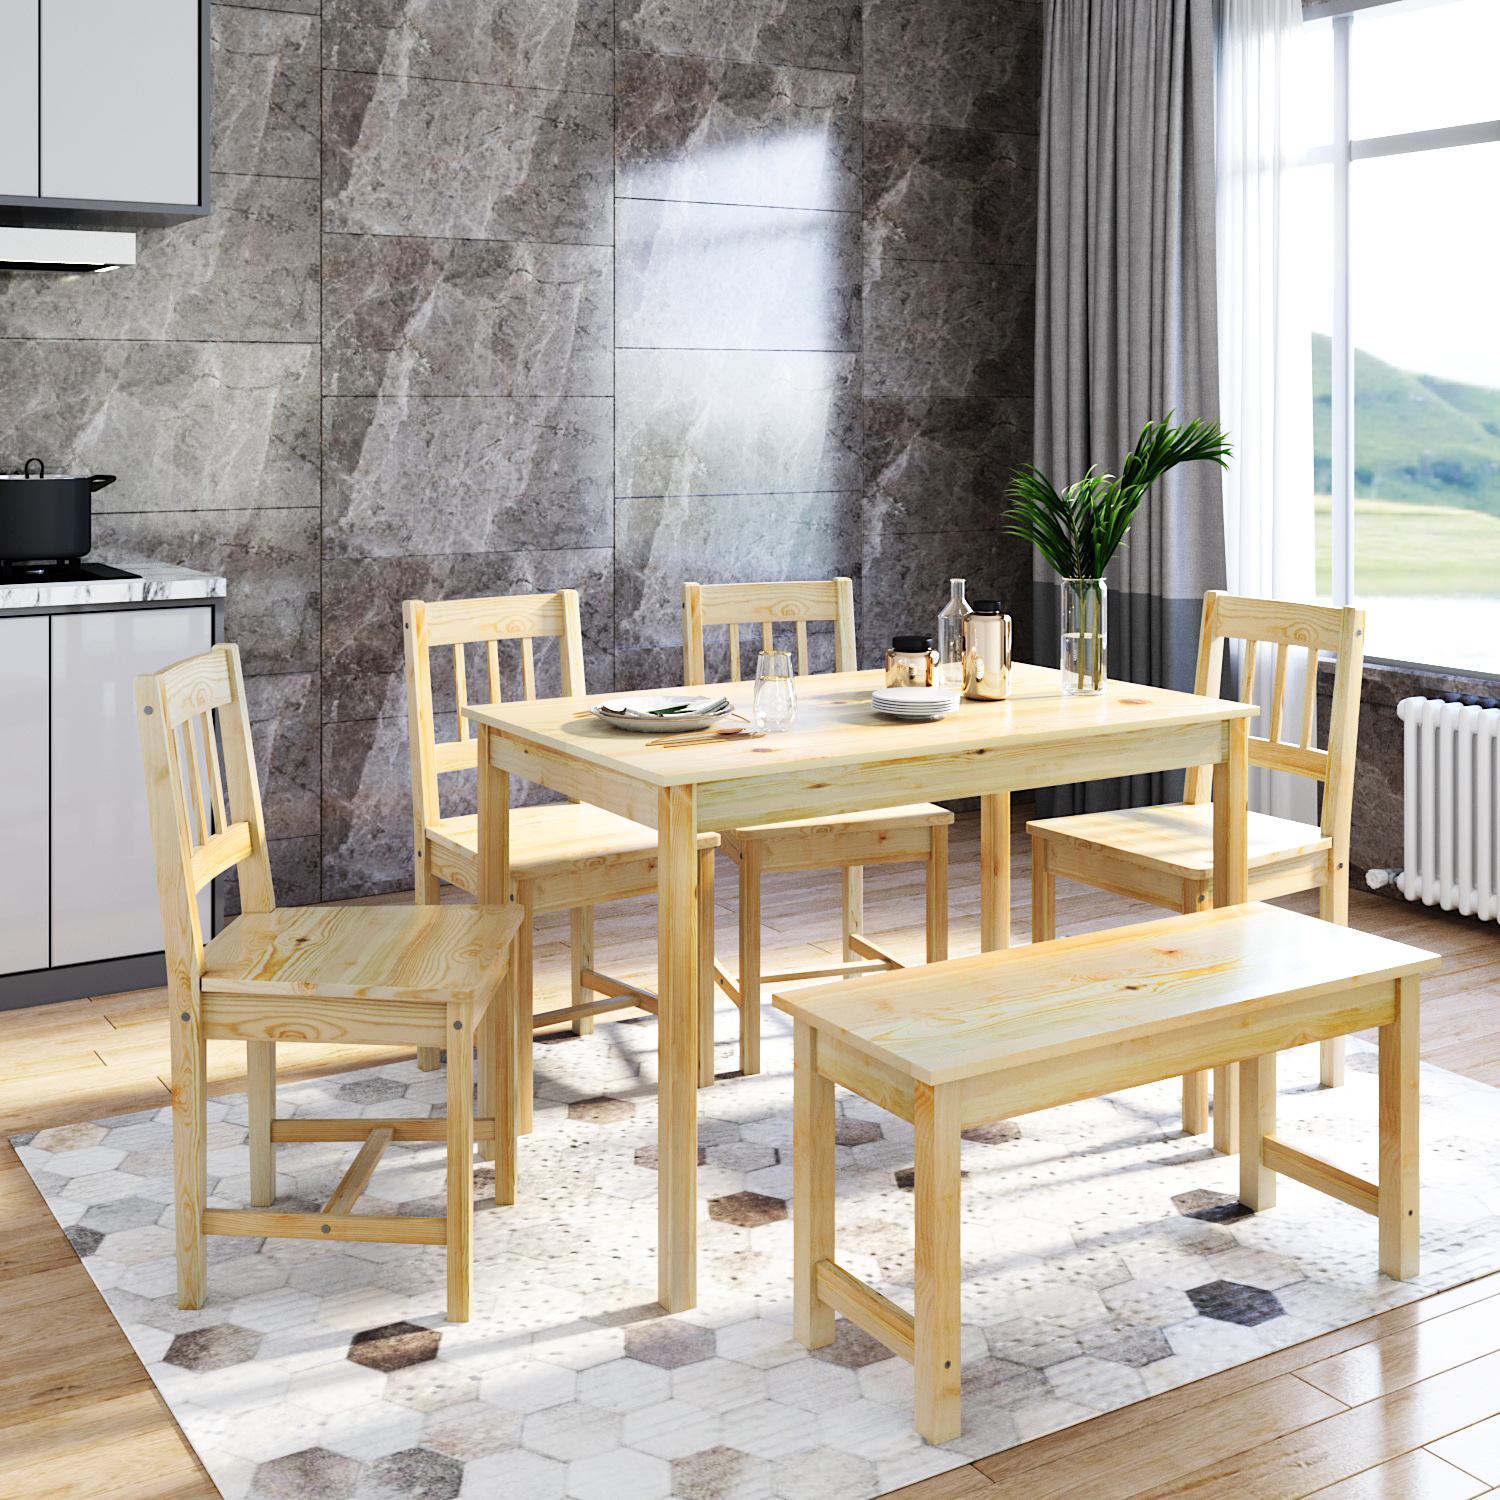 dining table chairs and bench set modern simple kitchen